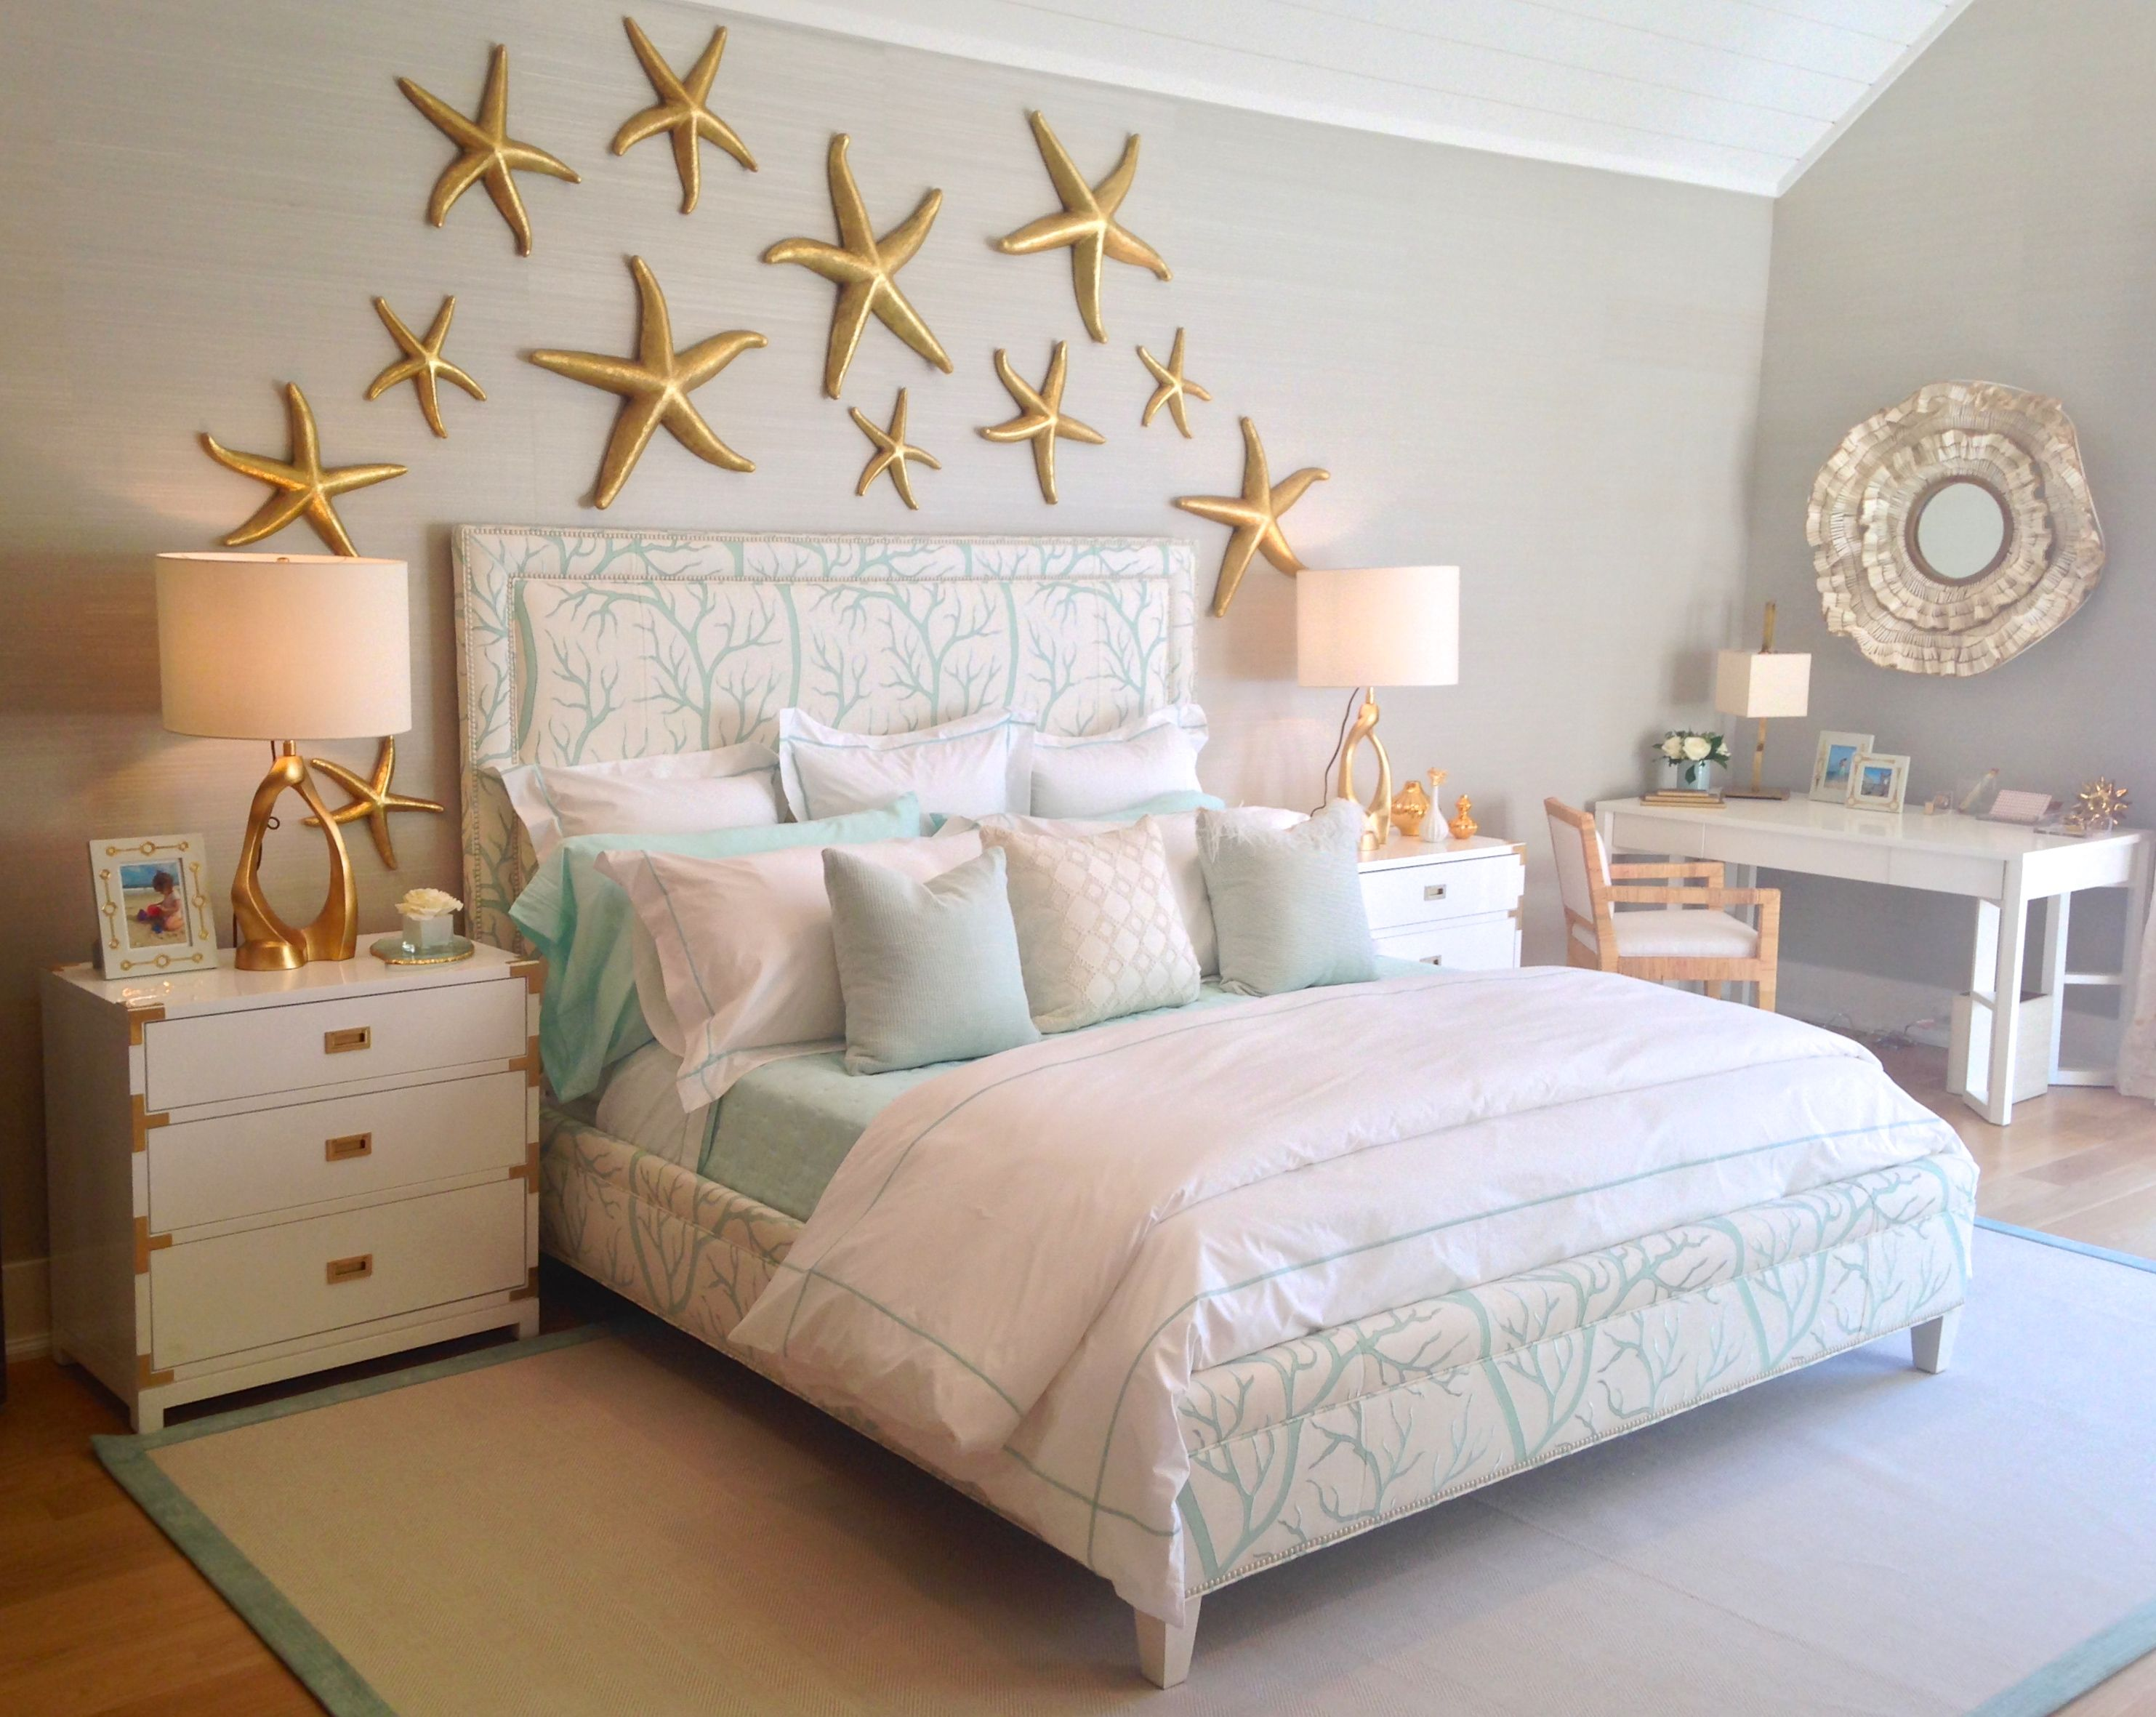 Beach themed bedrooms - Under The Sea Themed Bedroom With A Coral Print Upholstered Bed Gold Starfish On The